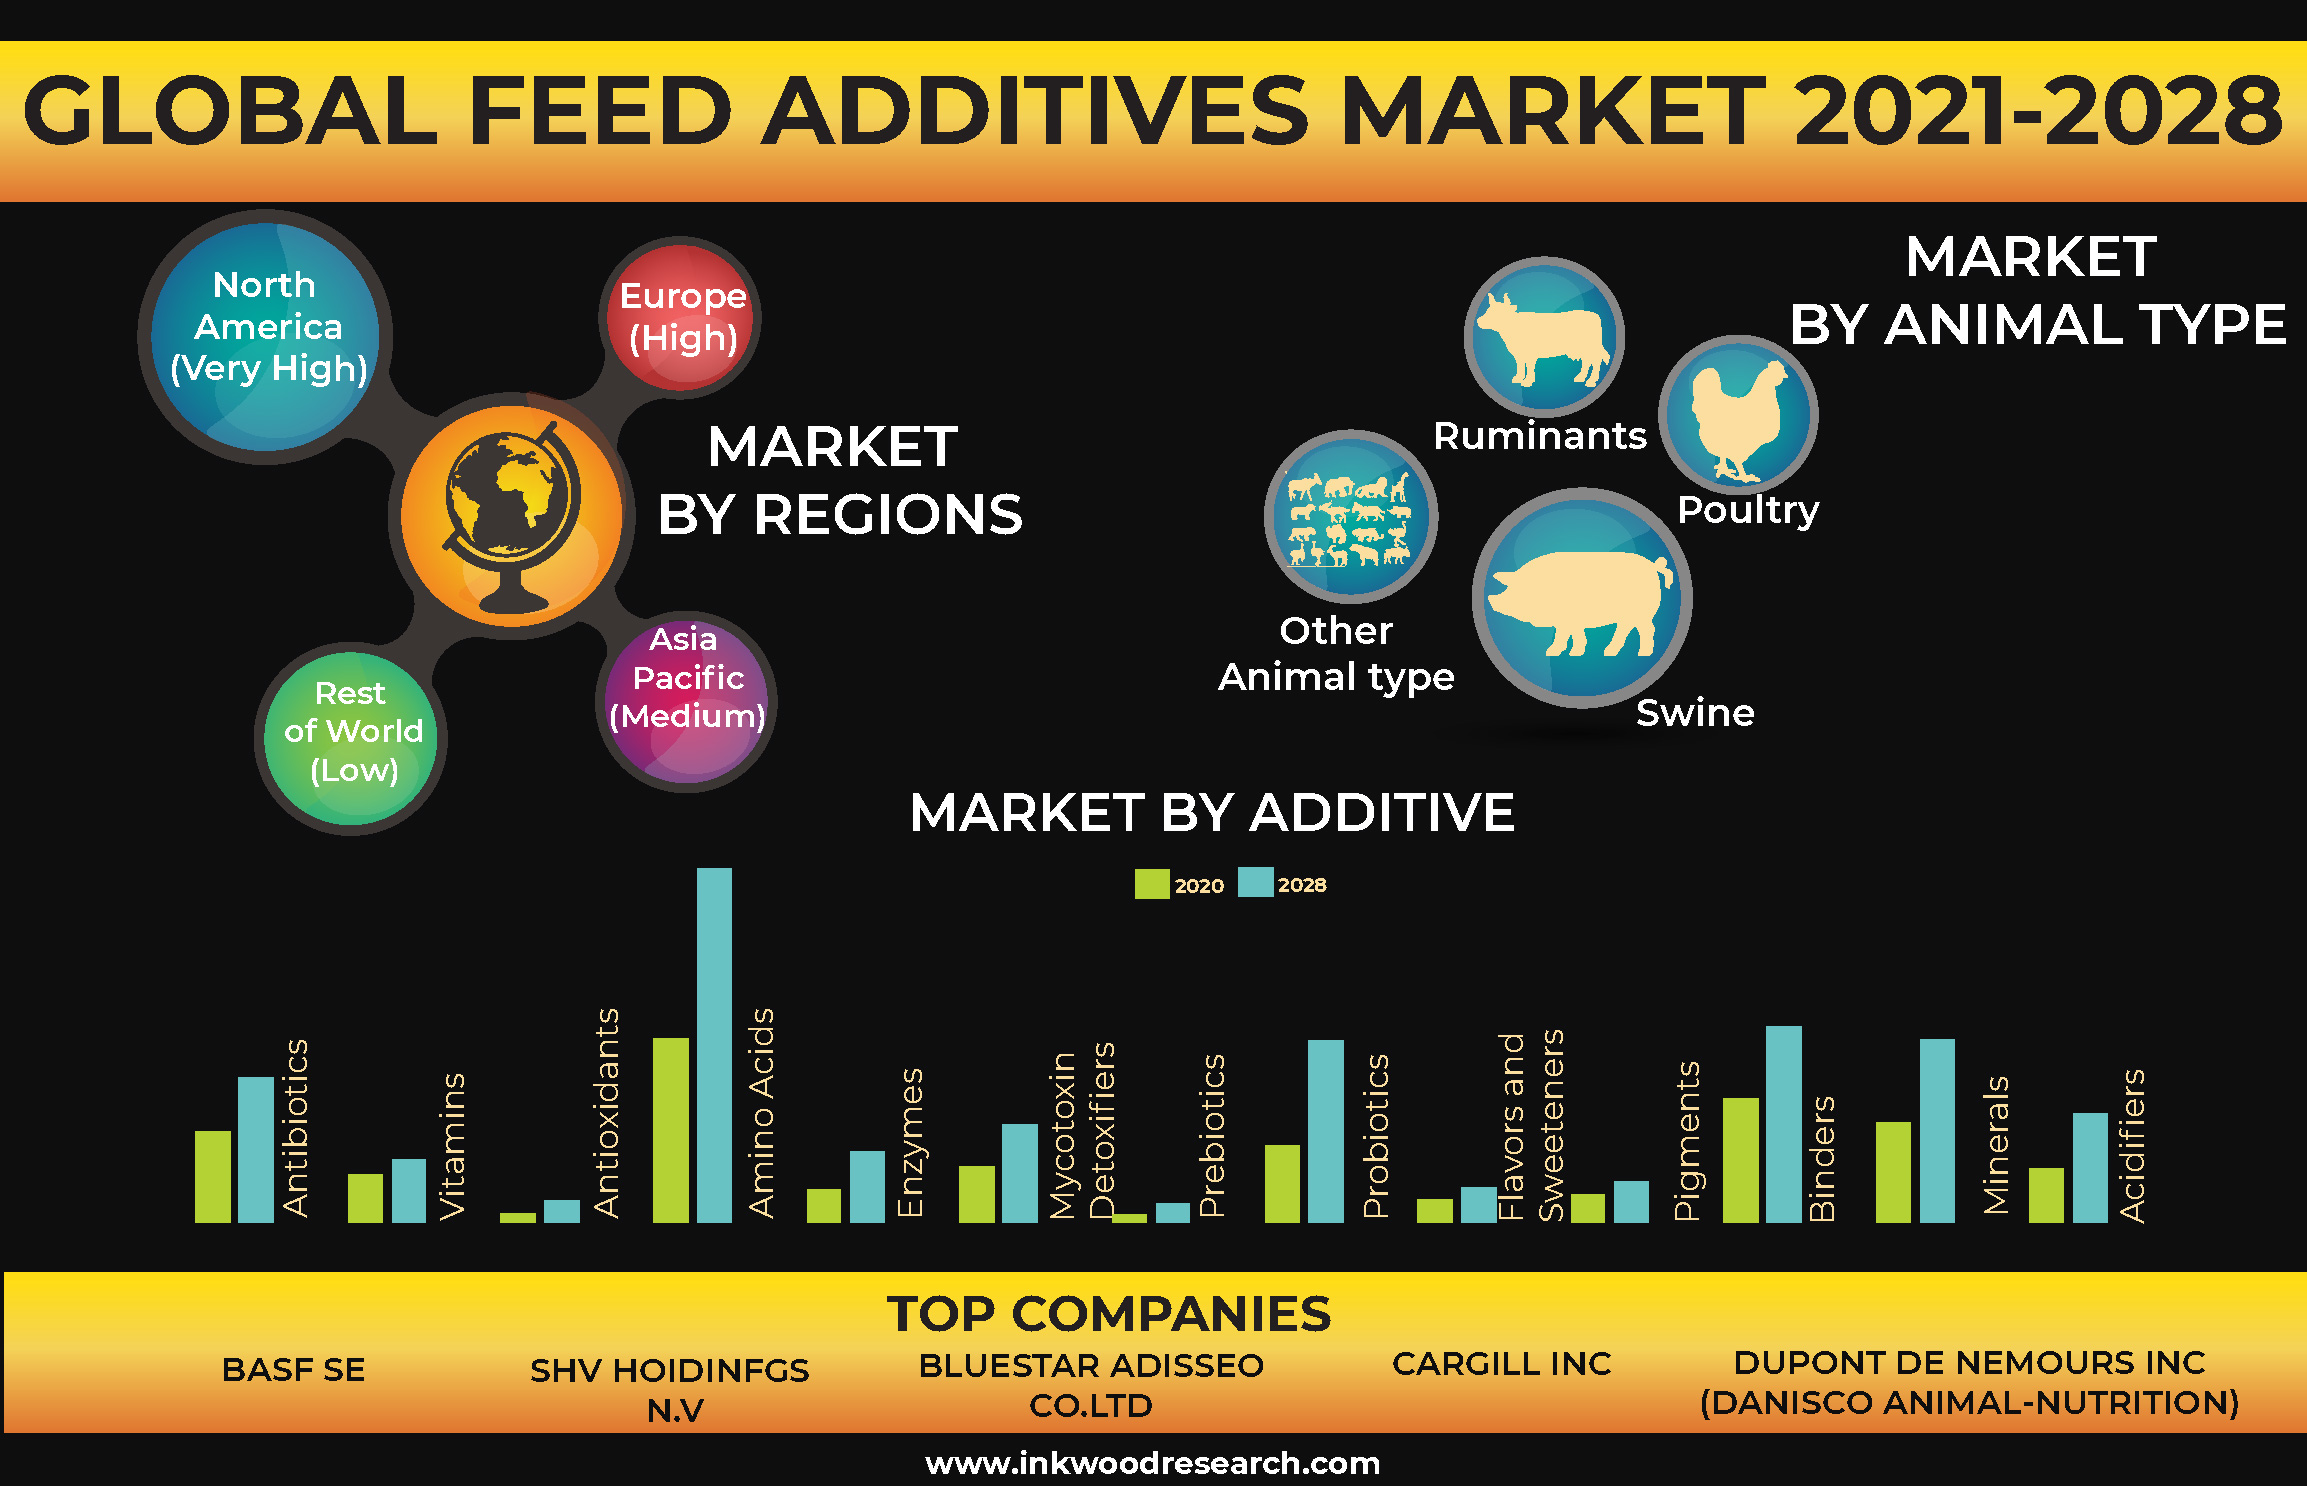 Rising Meat Consumption to Propel the Global Feed Additives Market